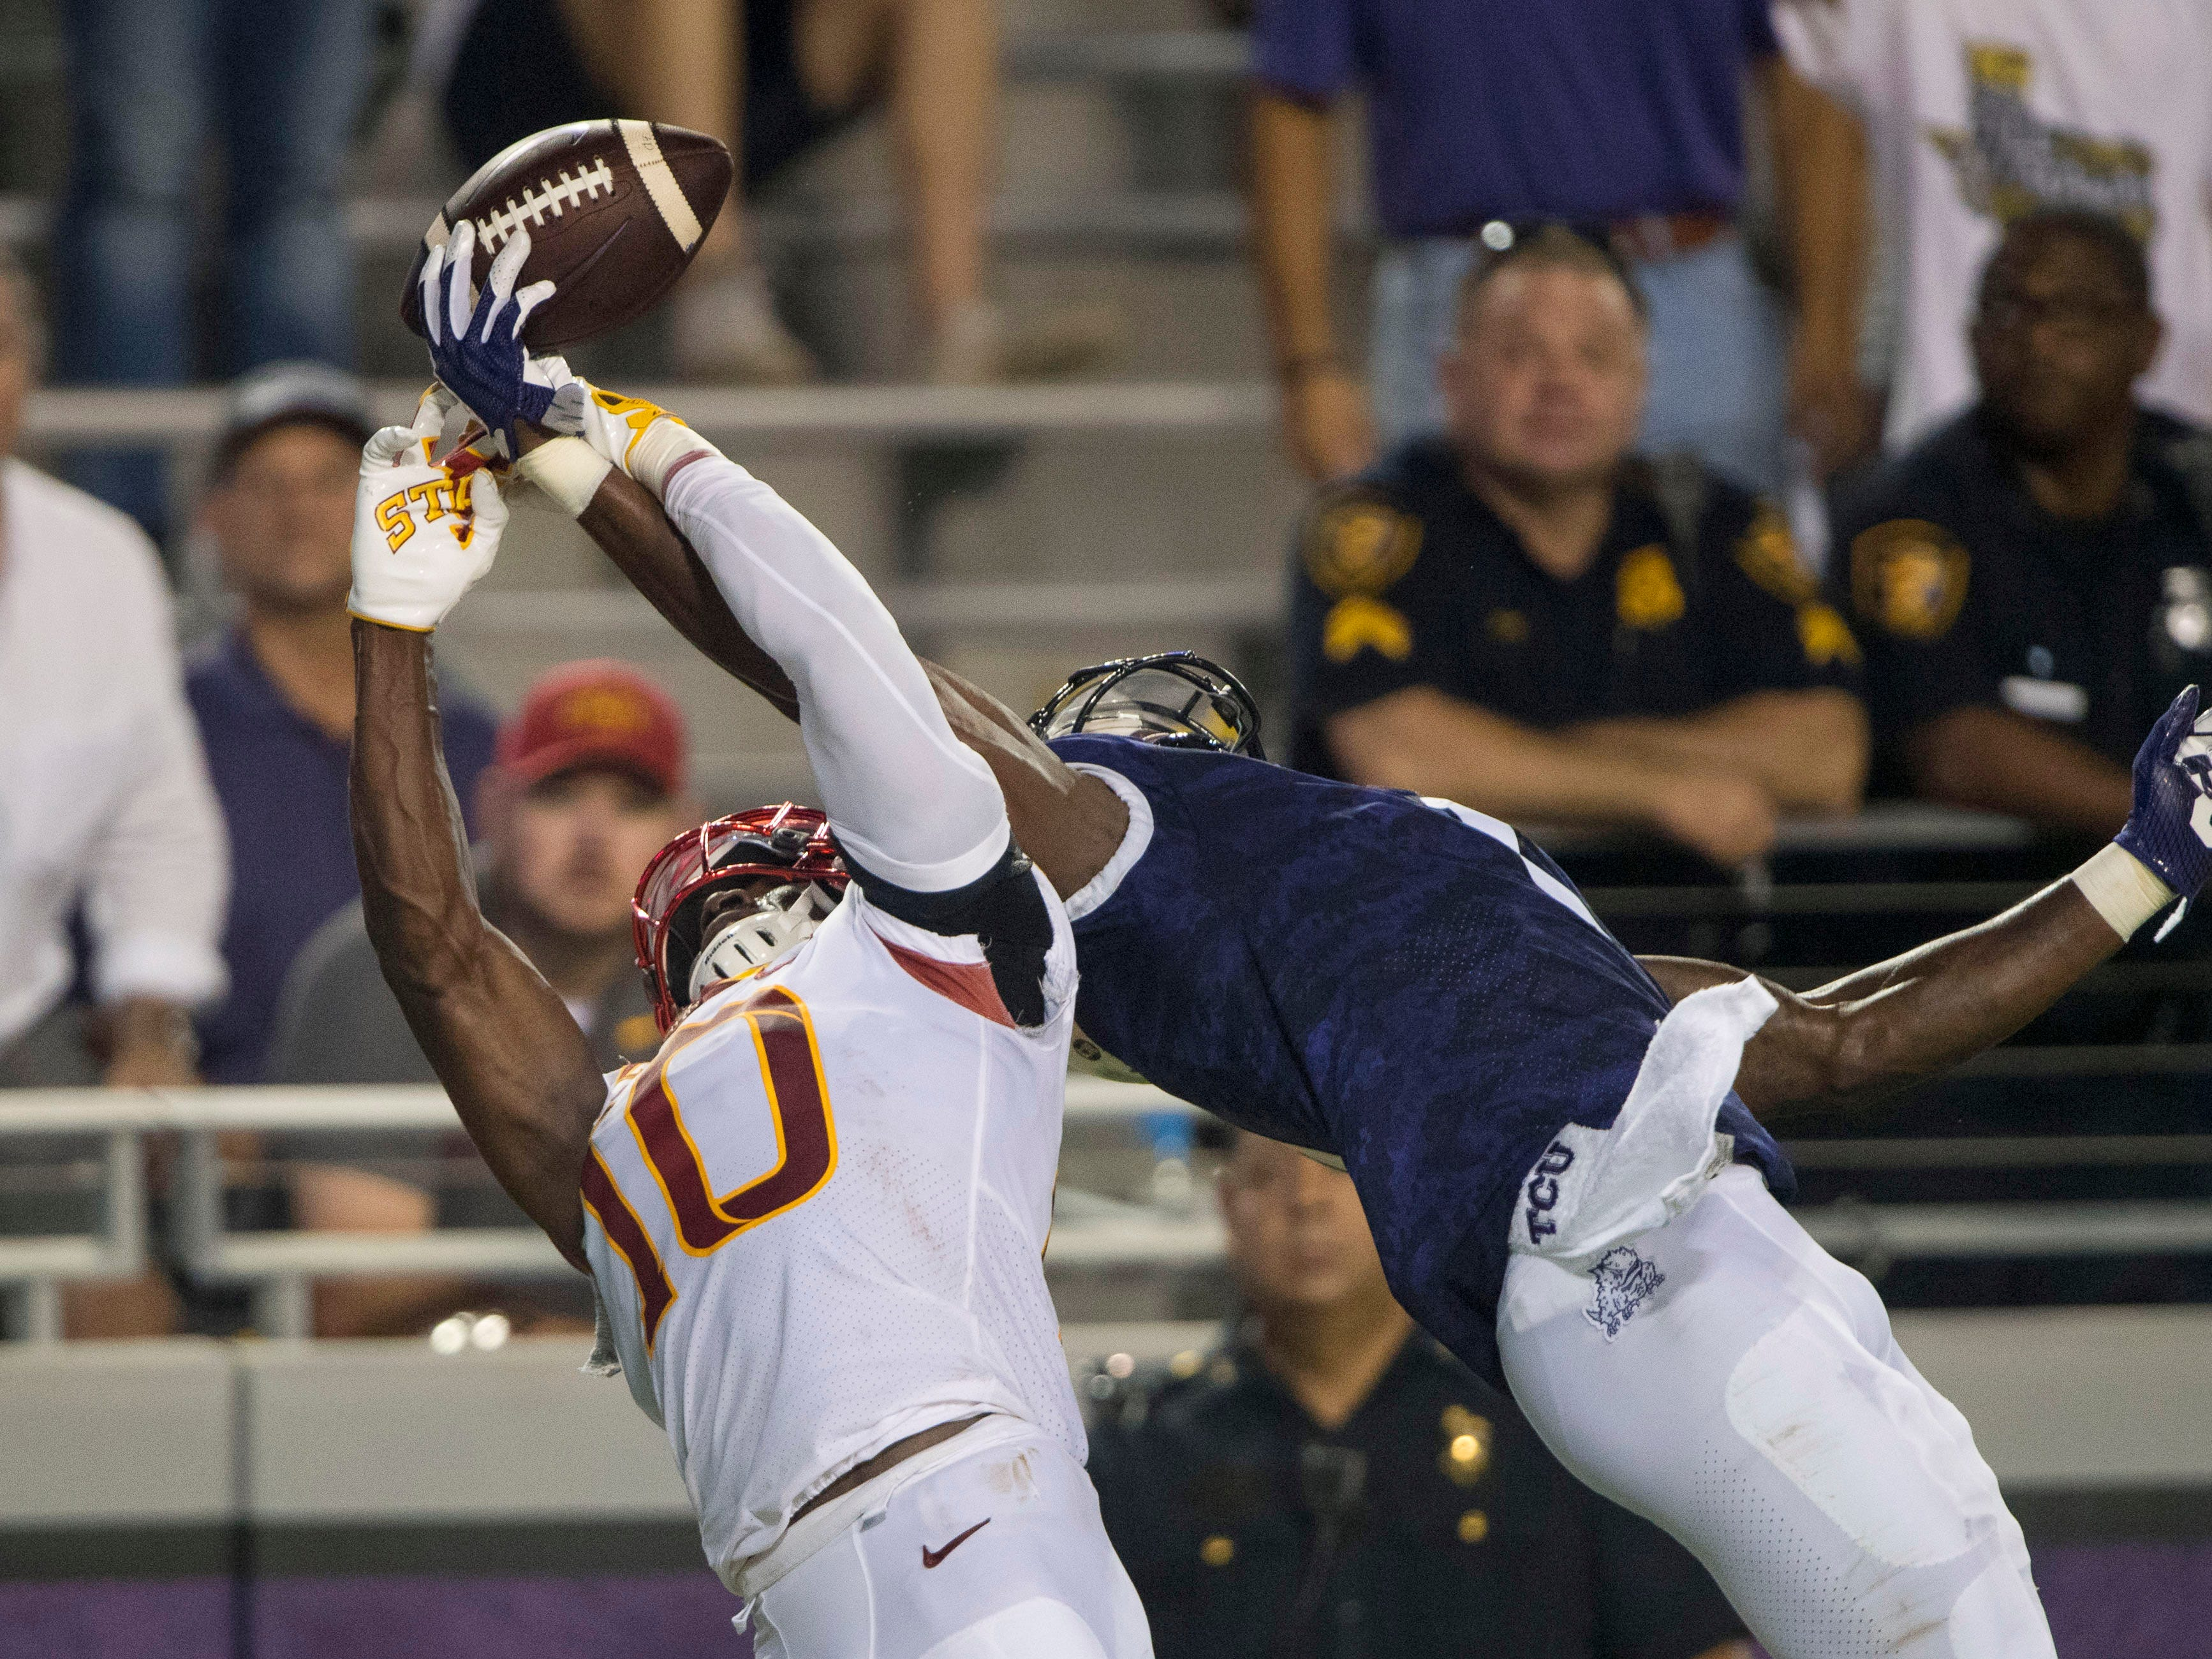 Iowa State Cyclones defensive back Brian Peavy (10) and TCU Horned Frogs wide receiver Jalen Reagor (1) fight for the ball during the second half at Amon G. Carter Stadium.